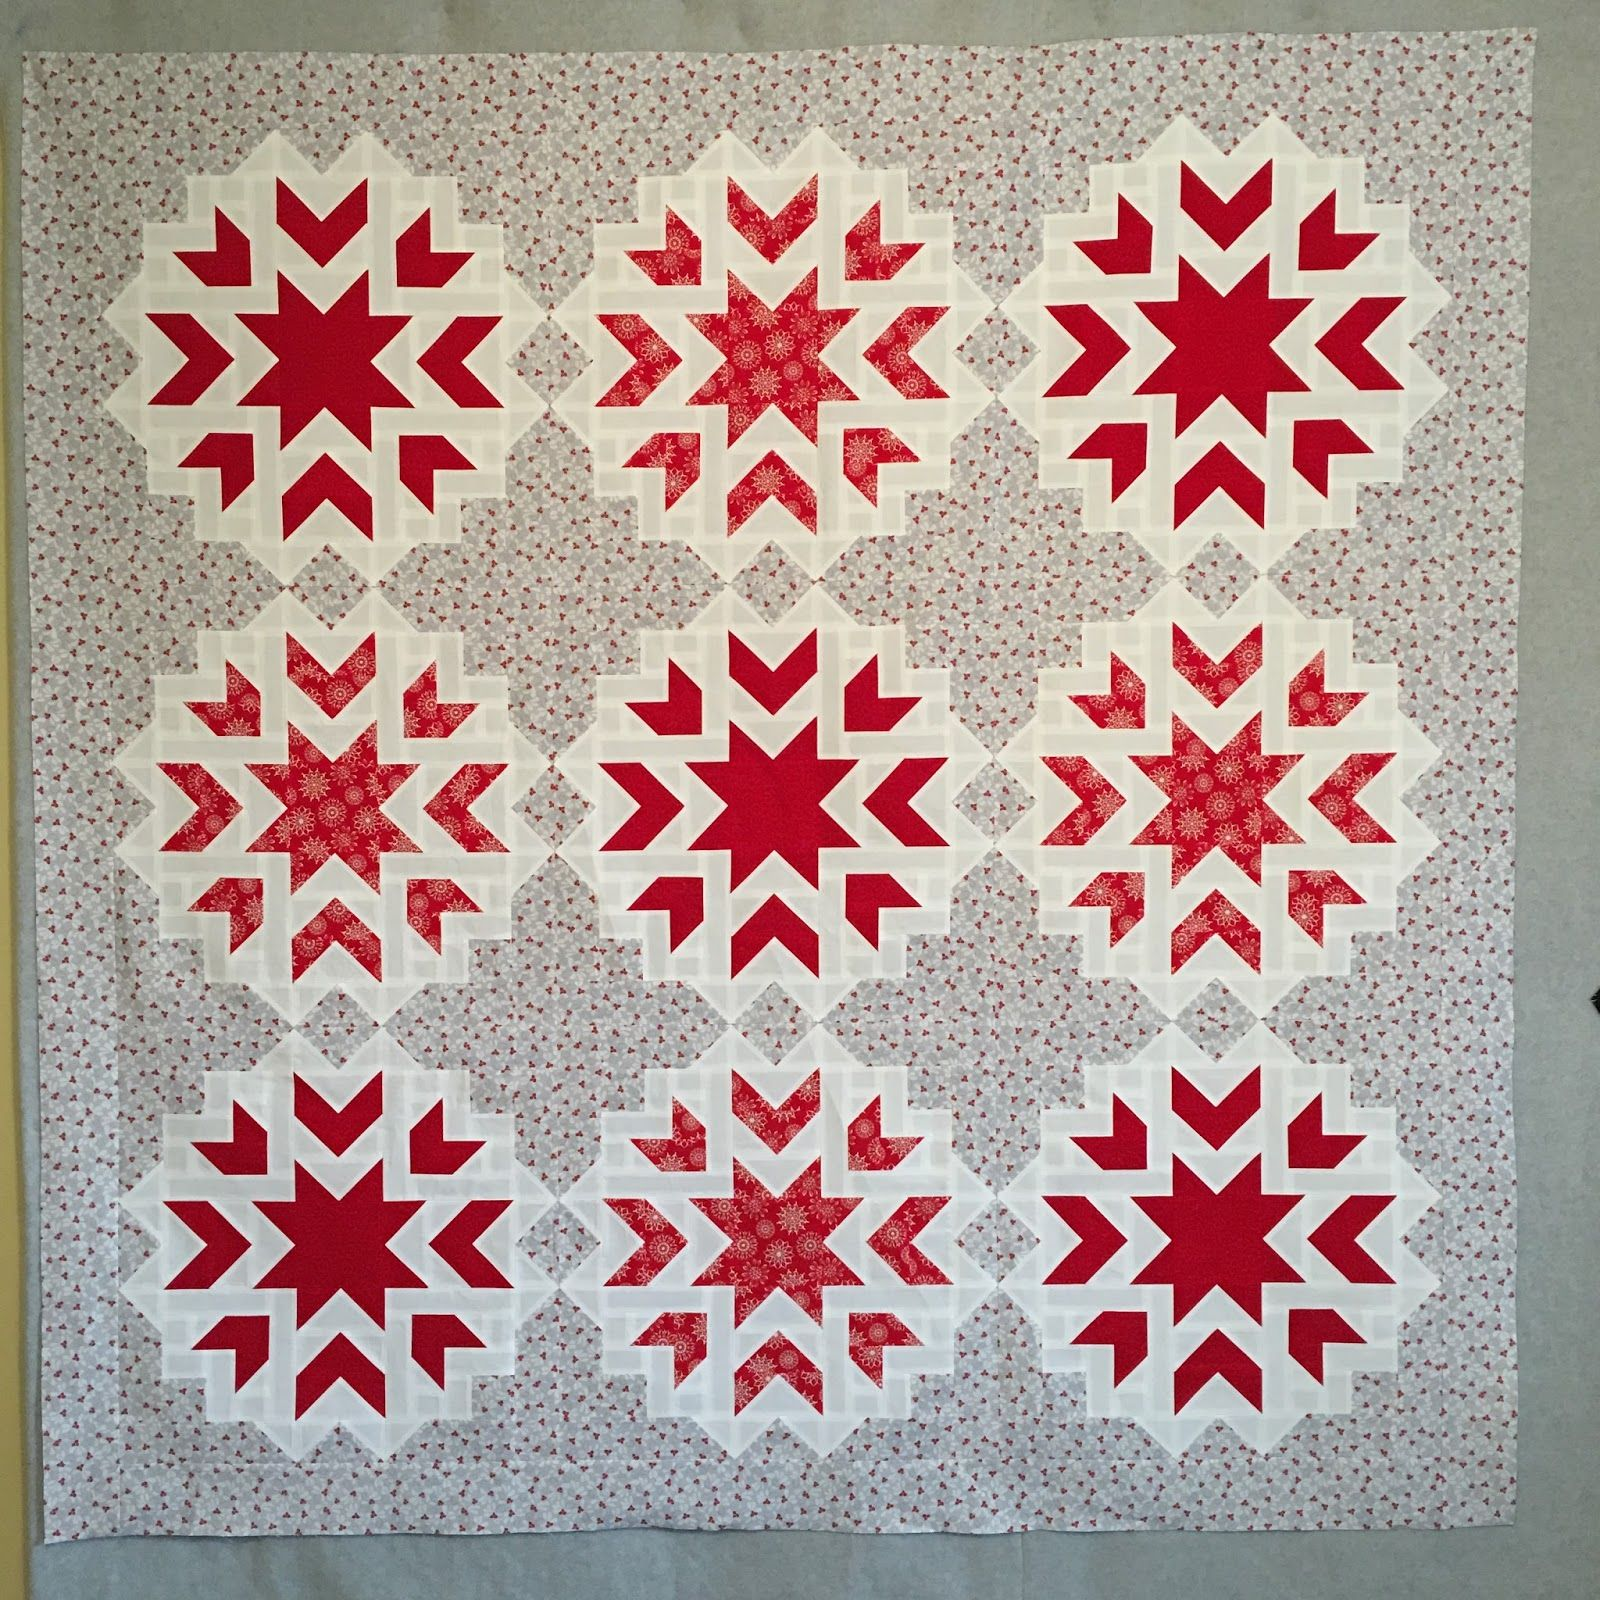 First Snow quilt by Cupcakes n' Daisies. Quilt pattern by ... : snow quilts - Adamdwight.com